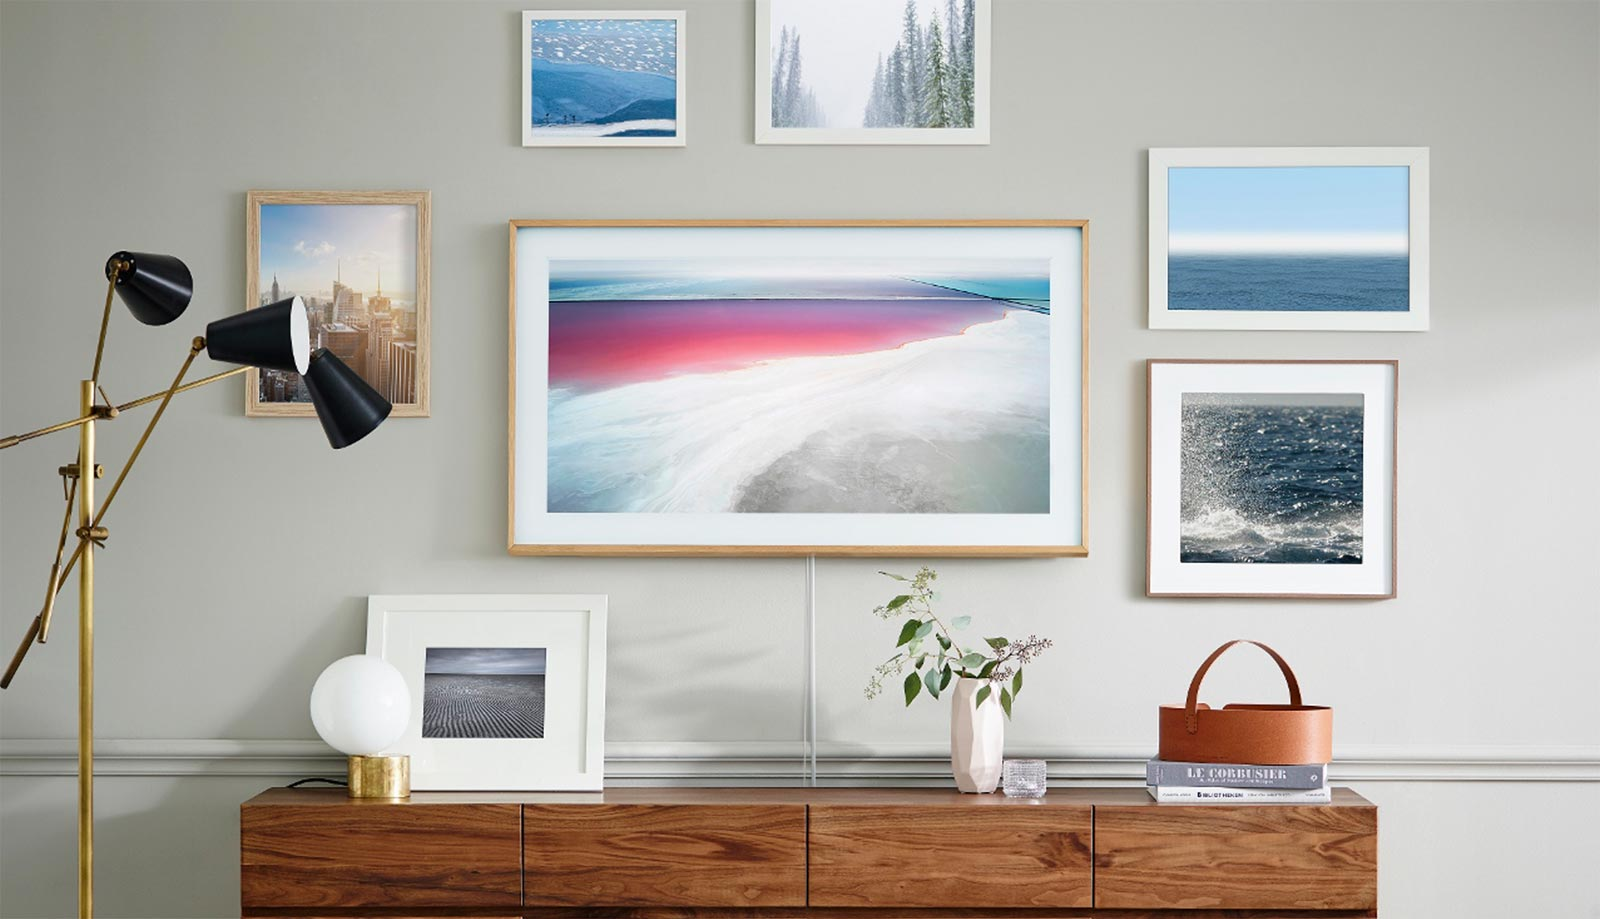 Samsung 2017 TV line-up - full overview with prices - FlatpanelsHD